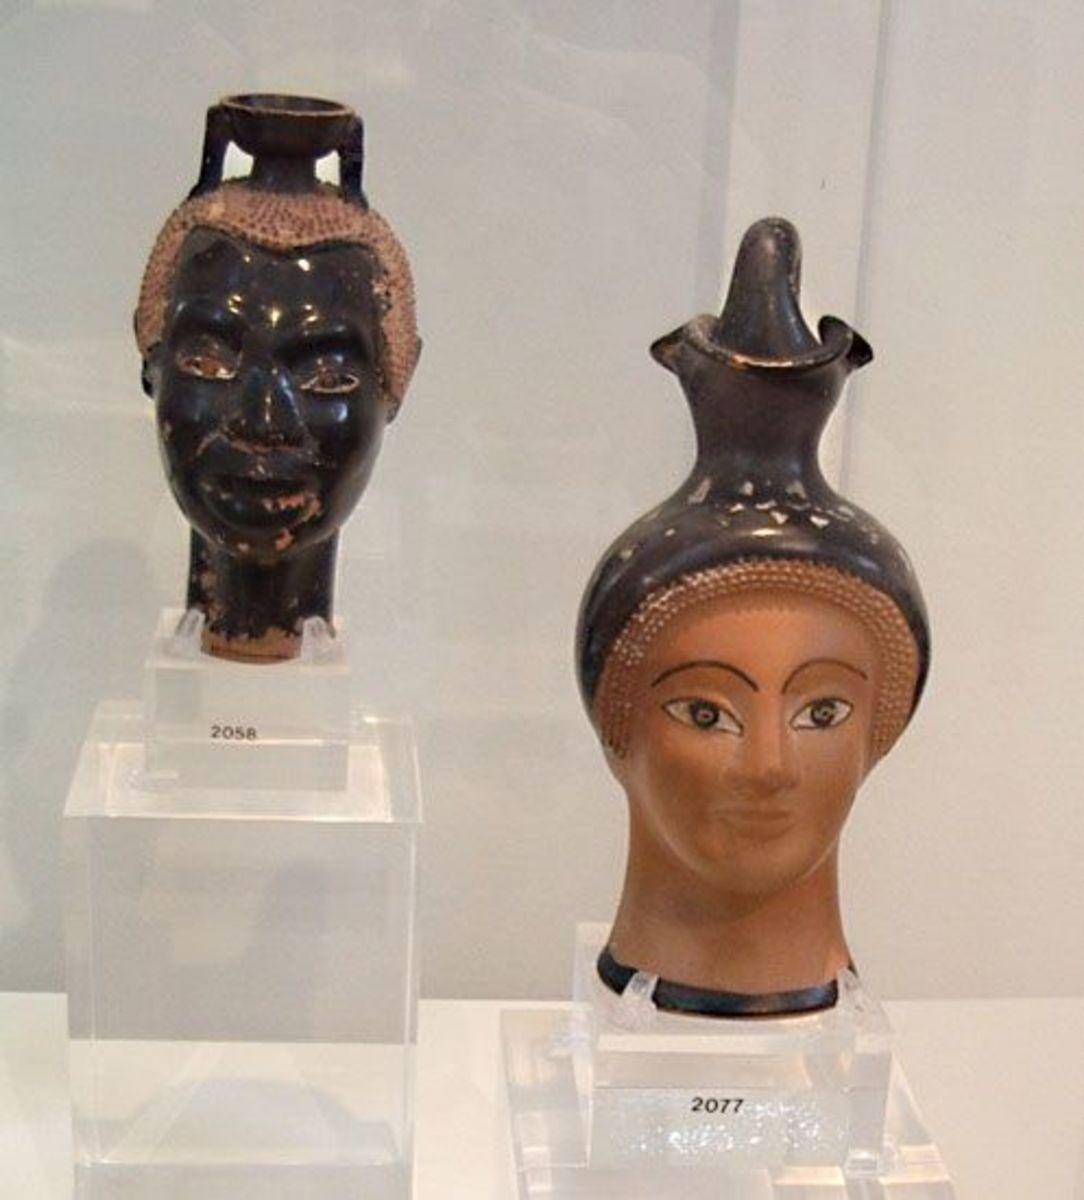 Moving into the classical period, early 5th century BCE. Perfumes were sold in mini vases like this; I wonder if the exotic facial types are meant to suggest where they come from.  (For students, this is Athens NM 2058 and NM 2077)